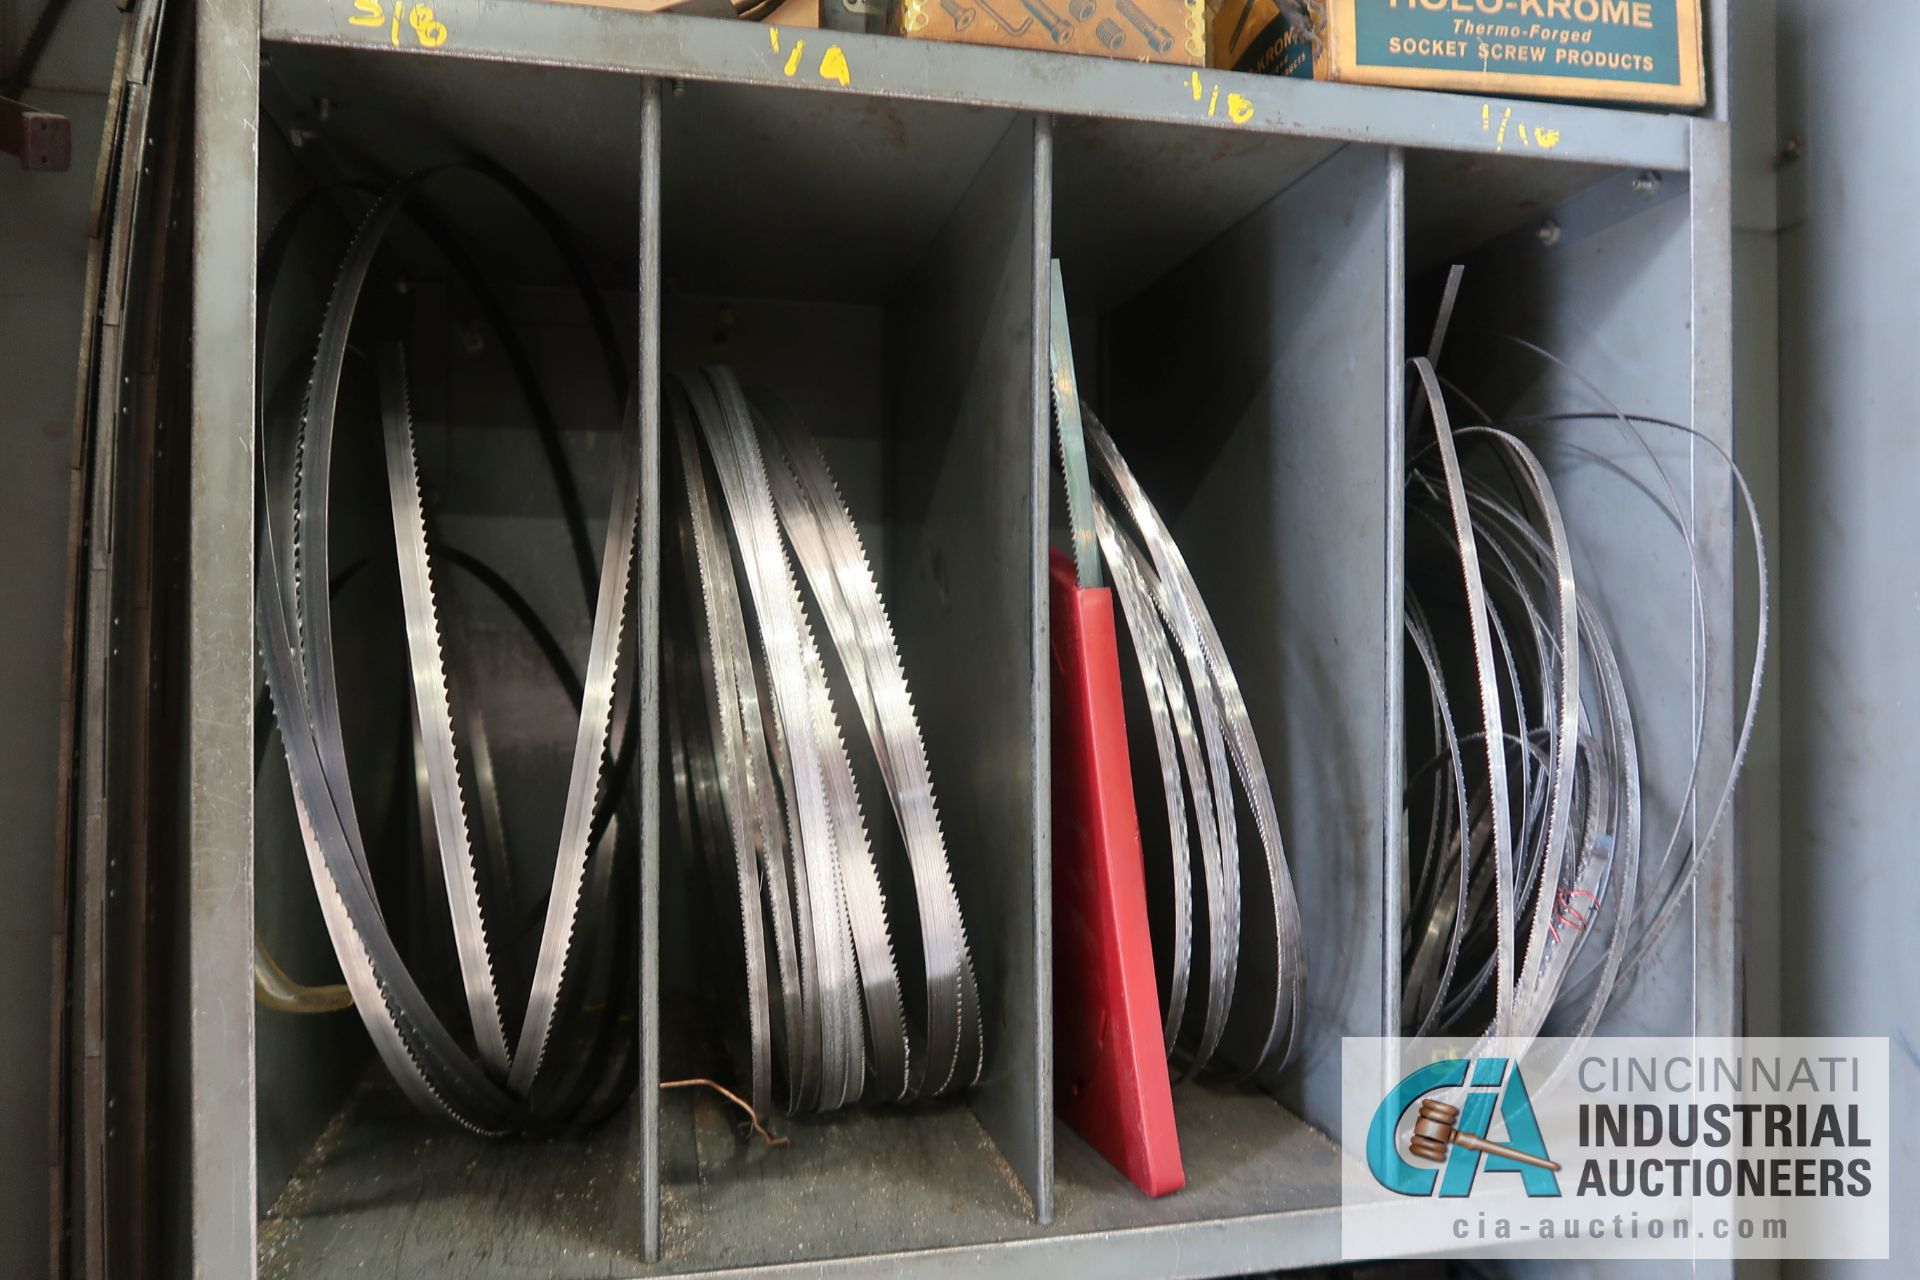 (LOT) MISCELLANEOUS SIZE BAND SAW BLADES WITH STORAGE CABINET - Image 2 of 6